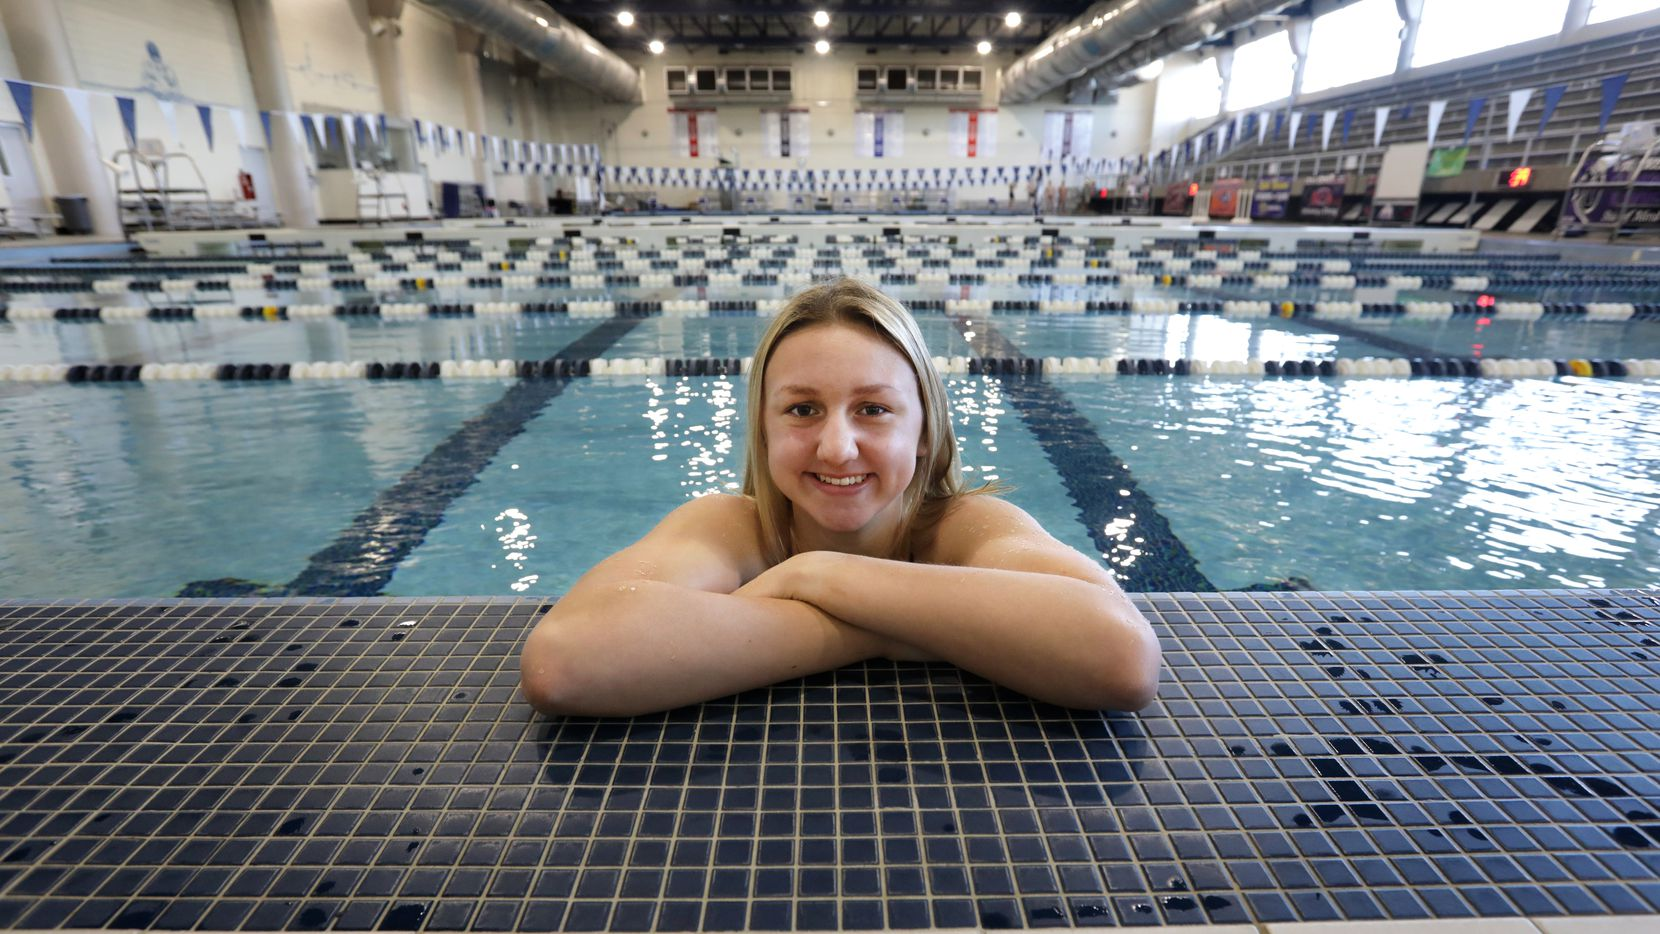 Frisco Independence swimmer Sienna Schellenger poses for a photograph at the Bruce Eubanks Natatorium in Frisco, TX, on Feb. 23, 2021.